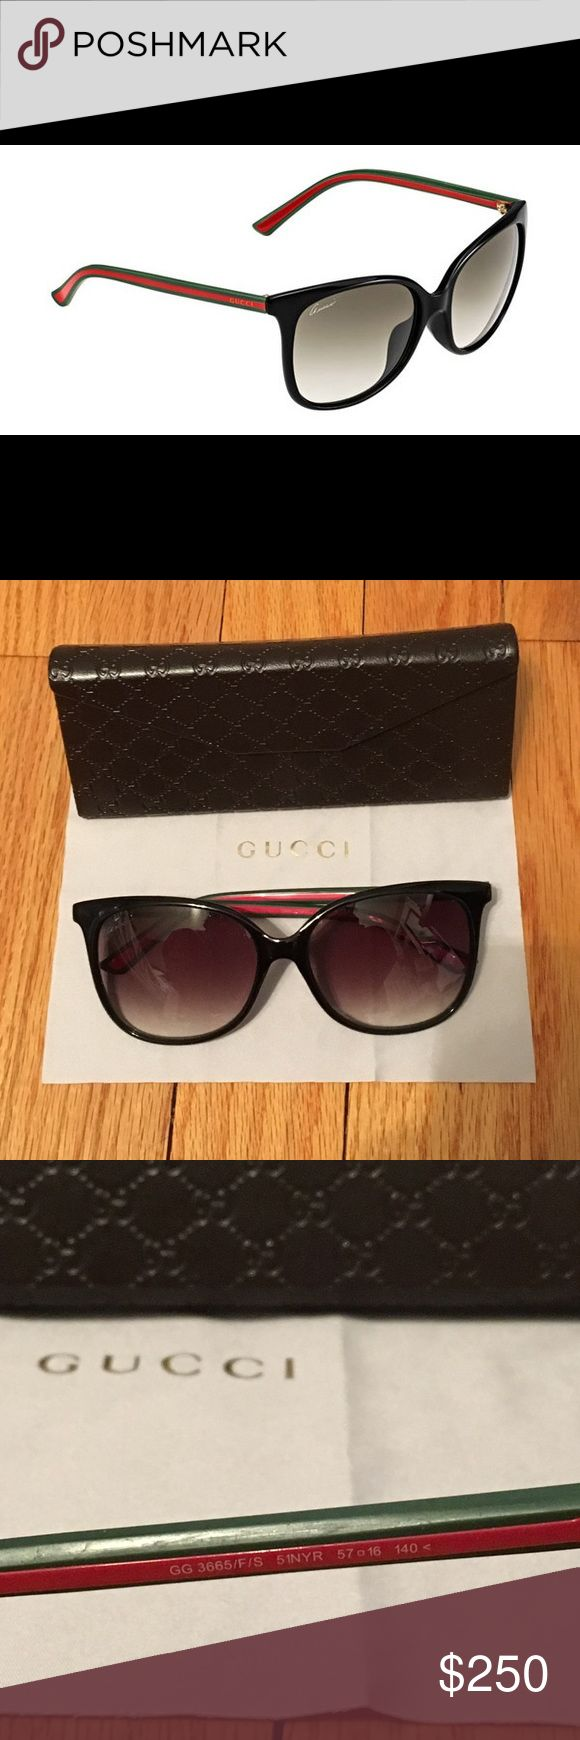 Authentic GUCCI Sunglasses Authentic Gucci GG 3665/F/S Asian Fit sunglasses. Black wayfarer shaped frame with signature green and red on the sides. Lense color is green gradient. They are in excellent condition aside some salt water residue on the lenses (pictured - it's just tiny speckles on the inside of the lenses that are not noticeable when wearing them) which happened when I wore them on vacation. Comes with original Gucci case and cleaning cloth. Gucci Accessories Sunglasses